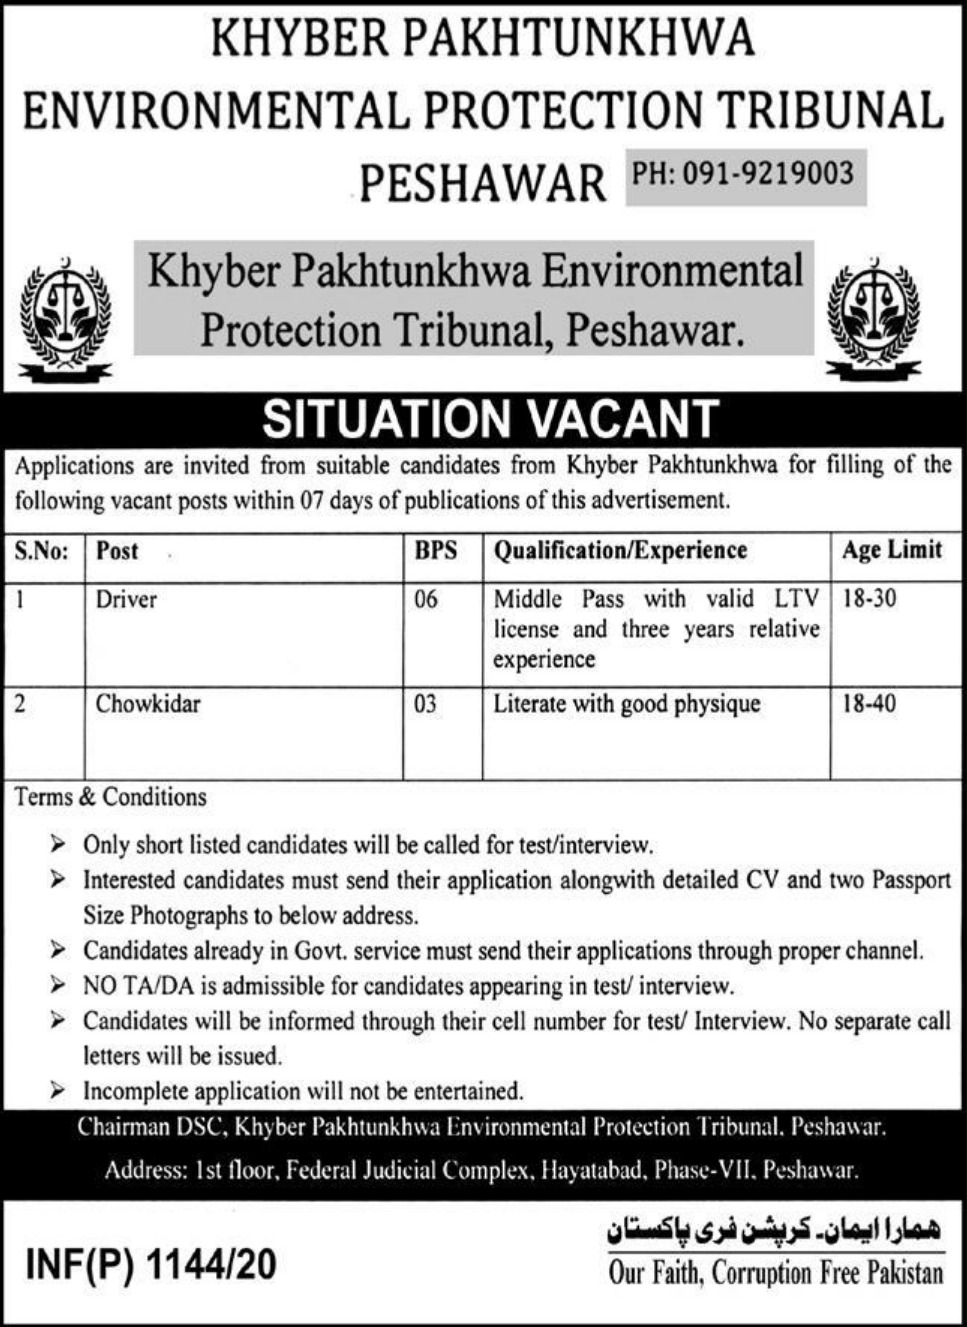 Khyber Pakhtunkhwa Environmental Protection Tribunal Peshawar Jobs 2020 KPK